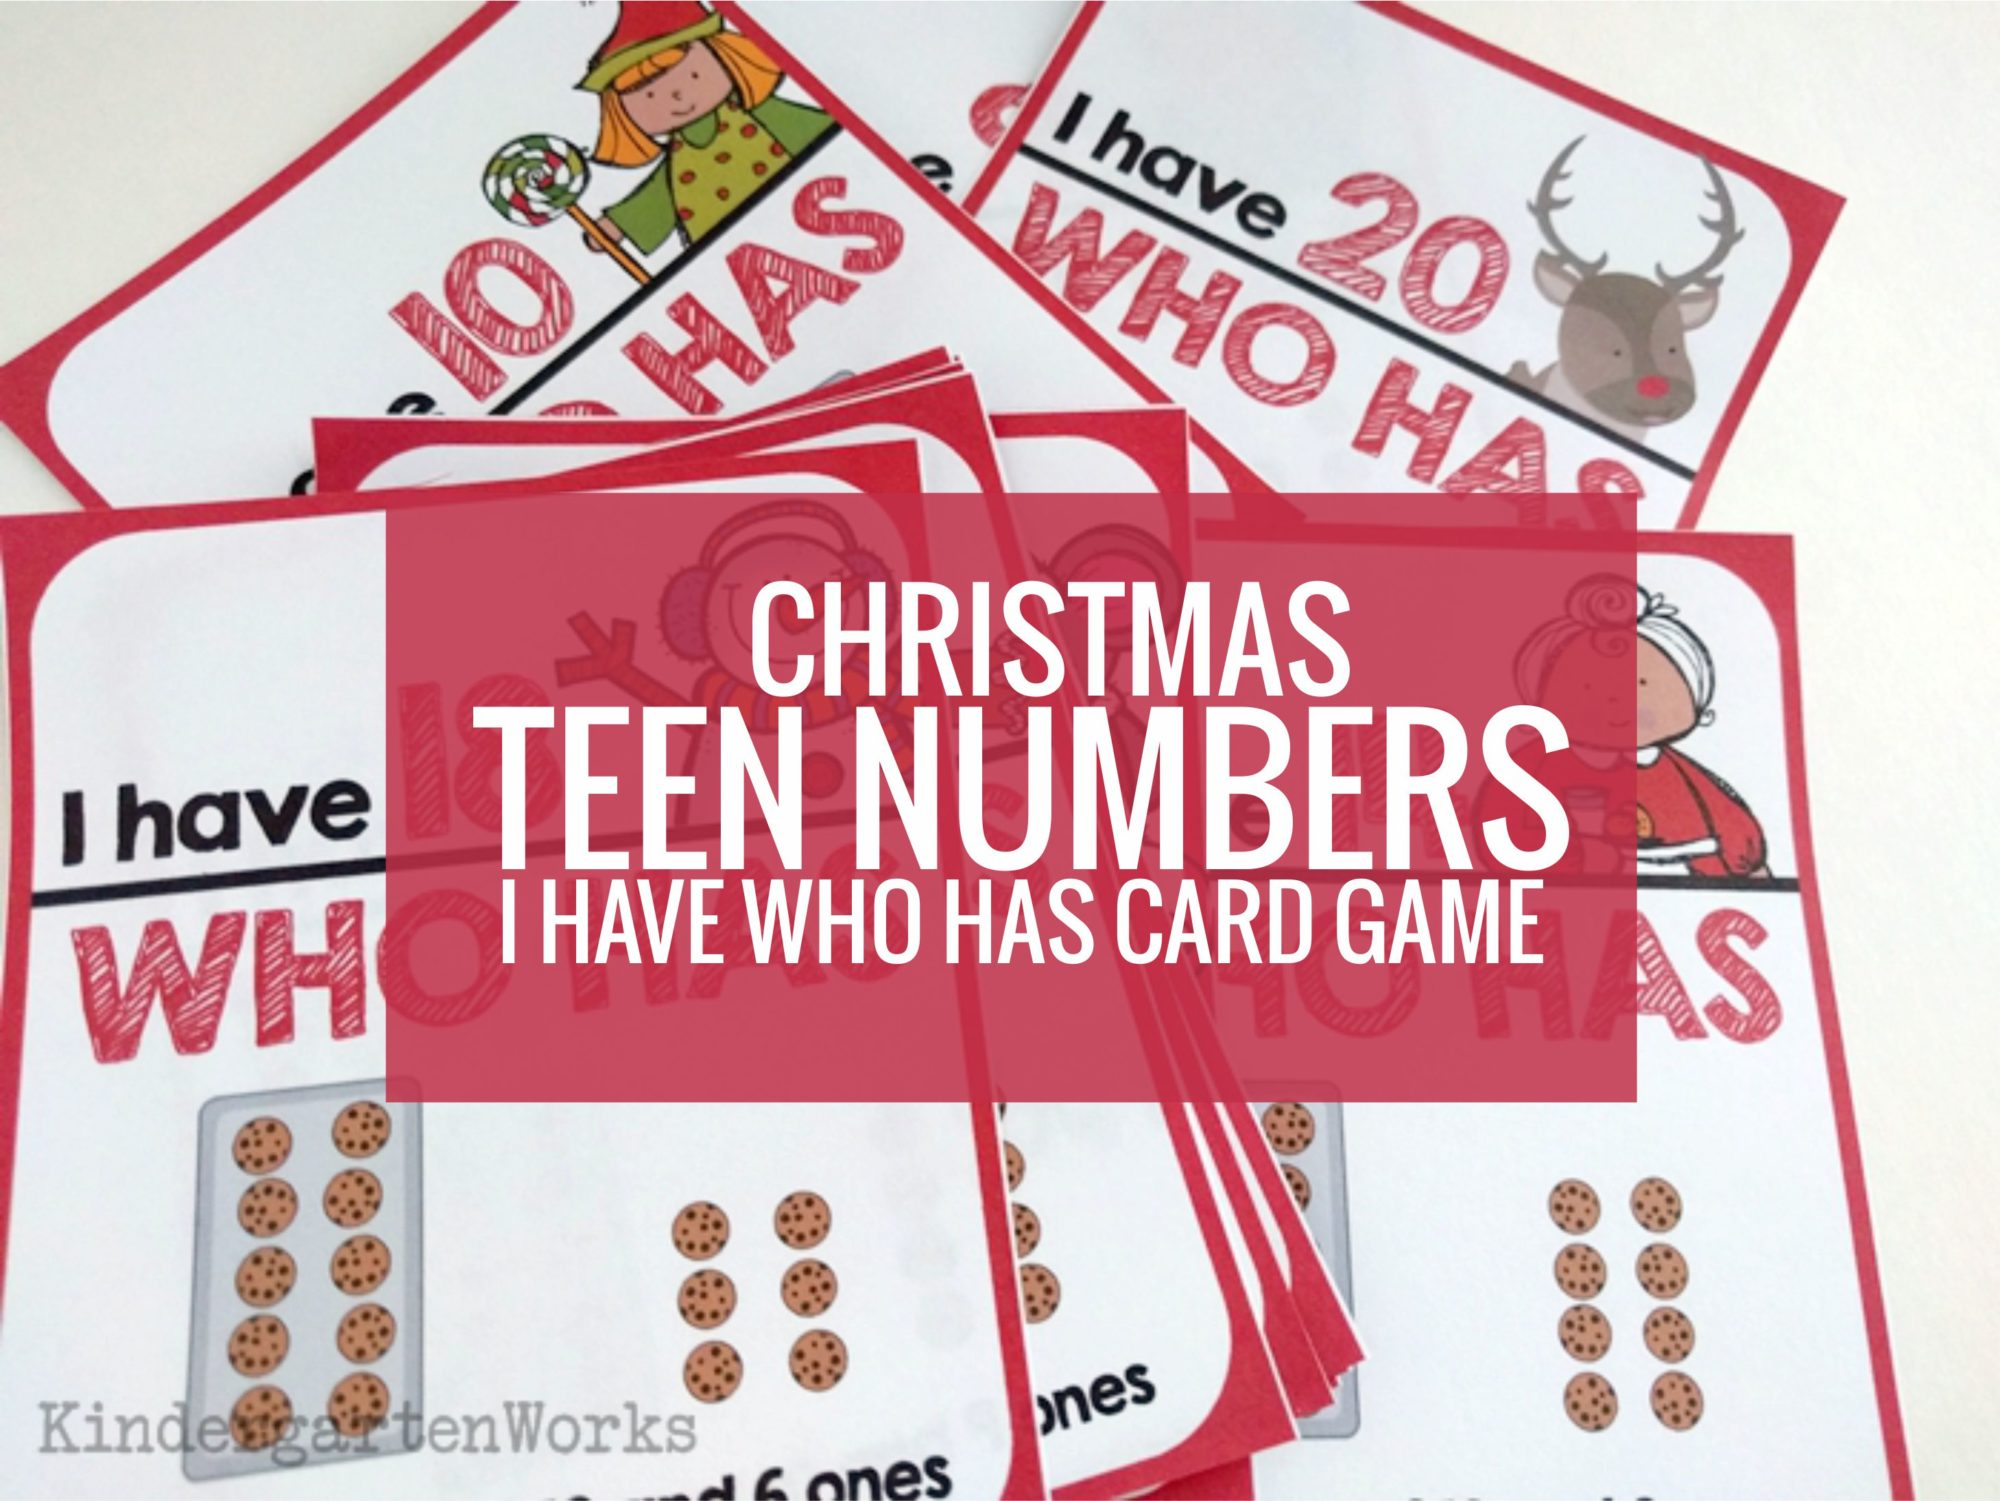 Christmas Teen Numbers I Have Who Has Card Game